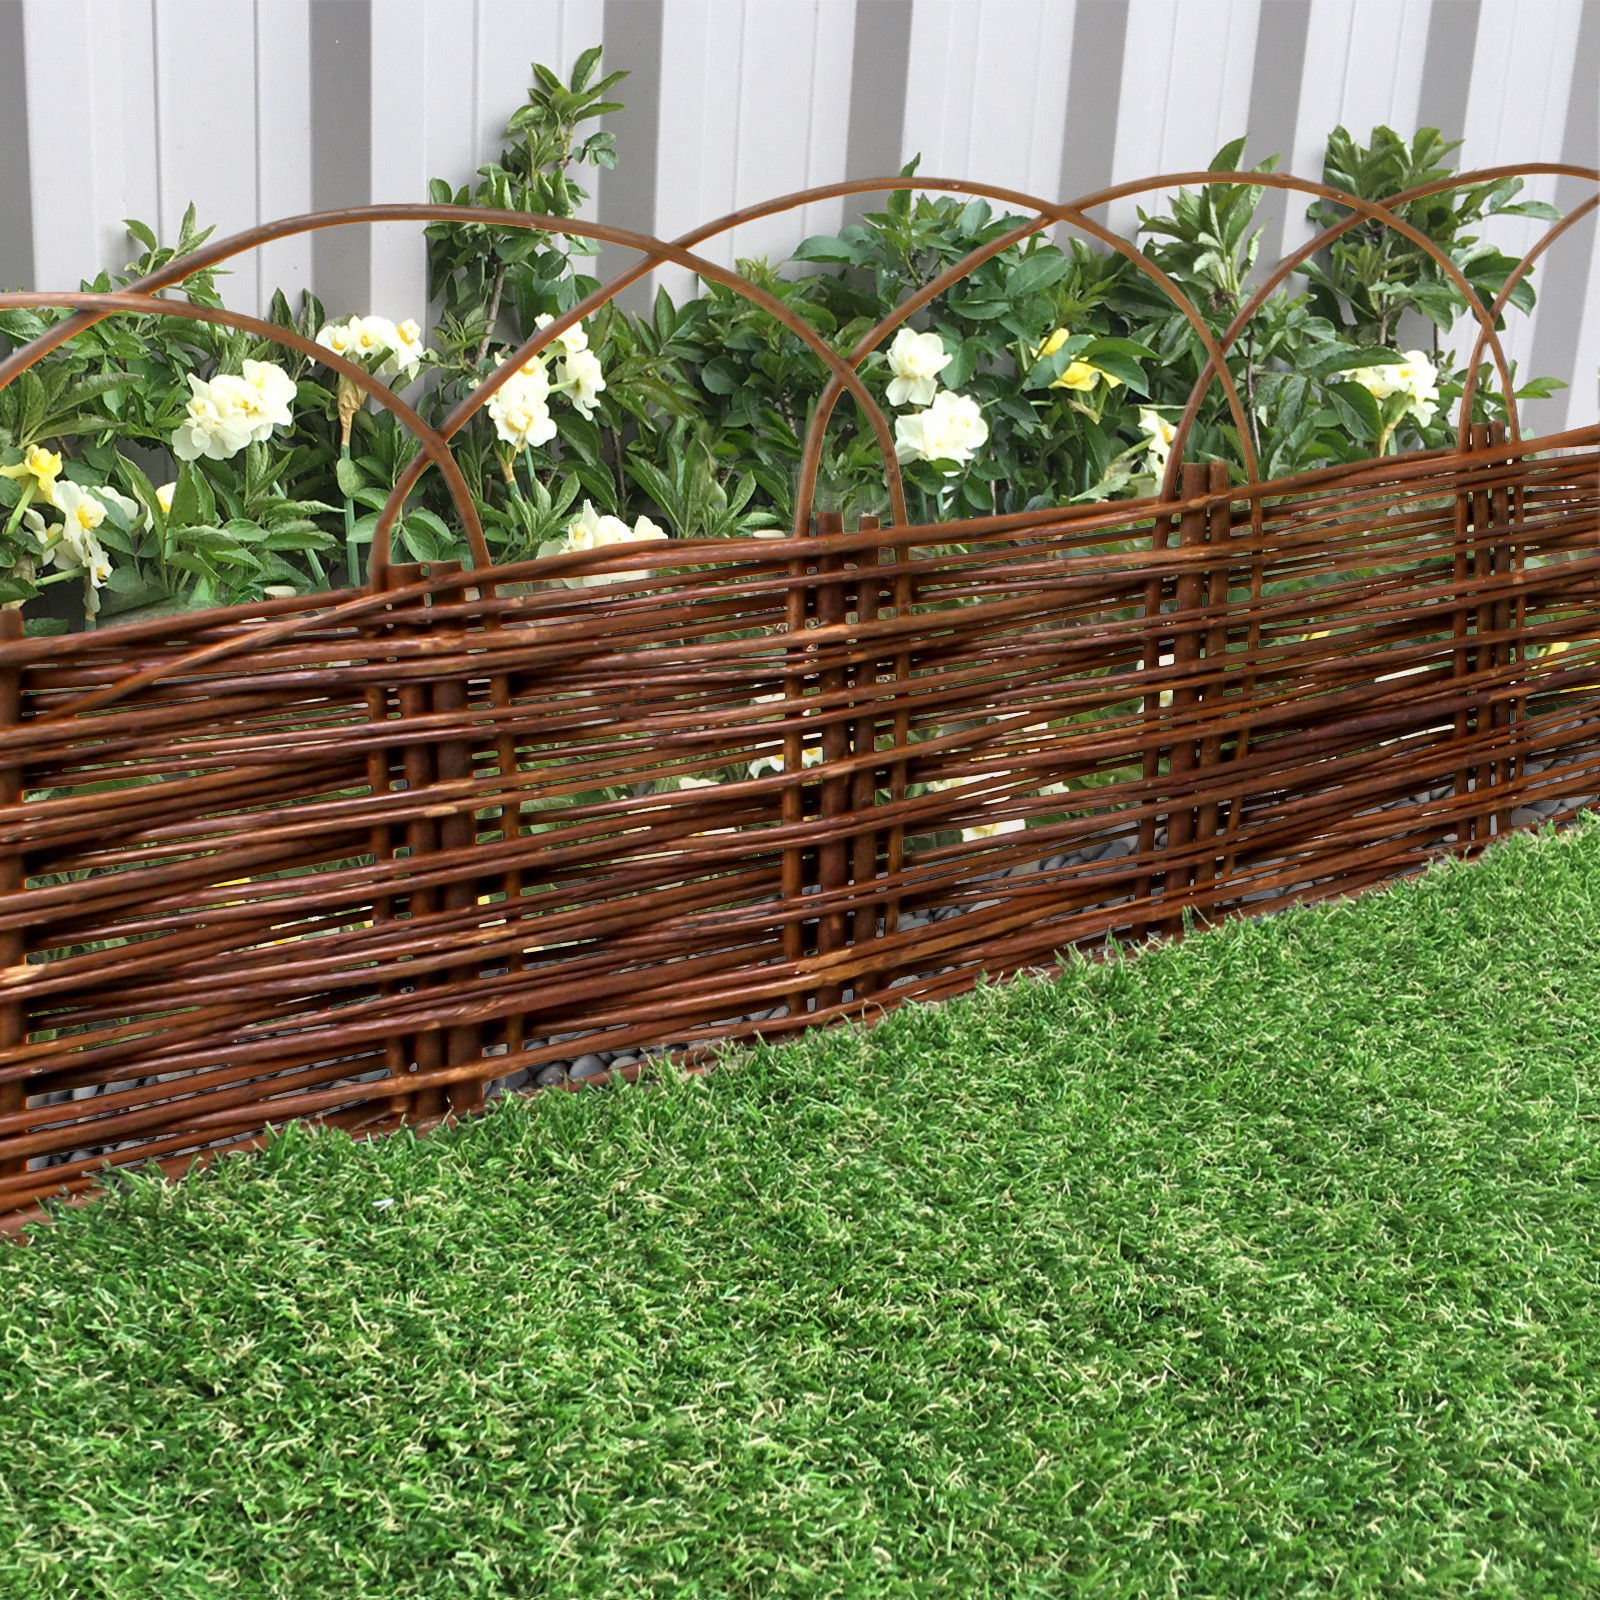 200 x 30cm Willow Lawn  Attractive Edging for Beds Borders Paths Natural Bamboo